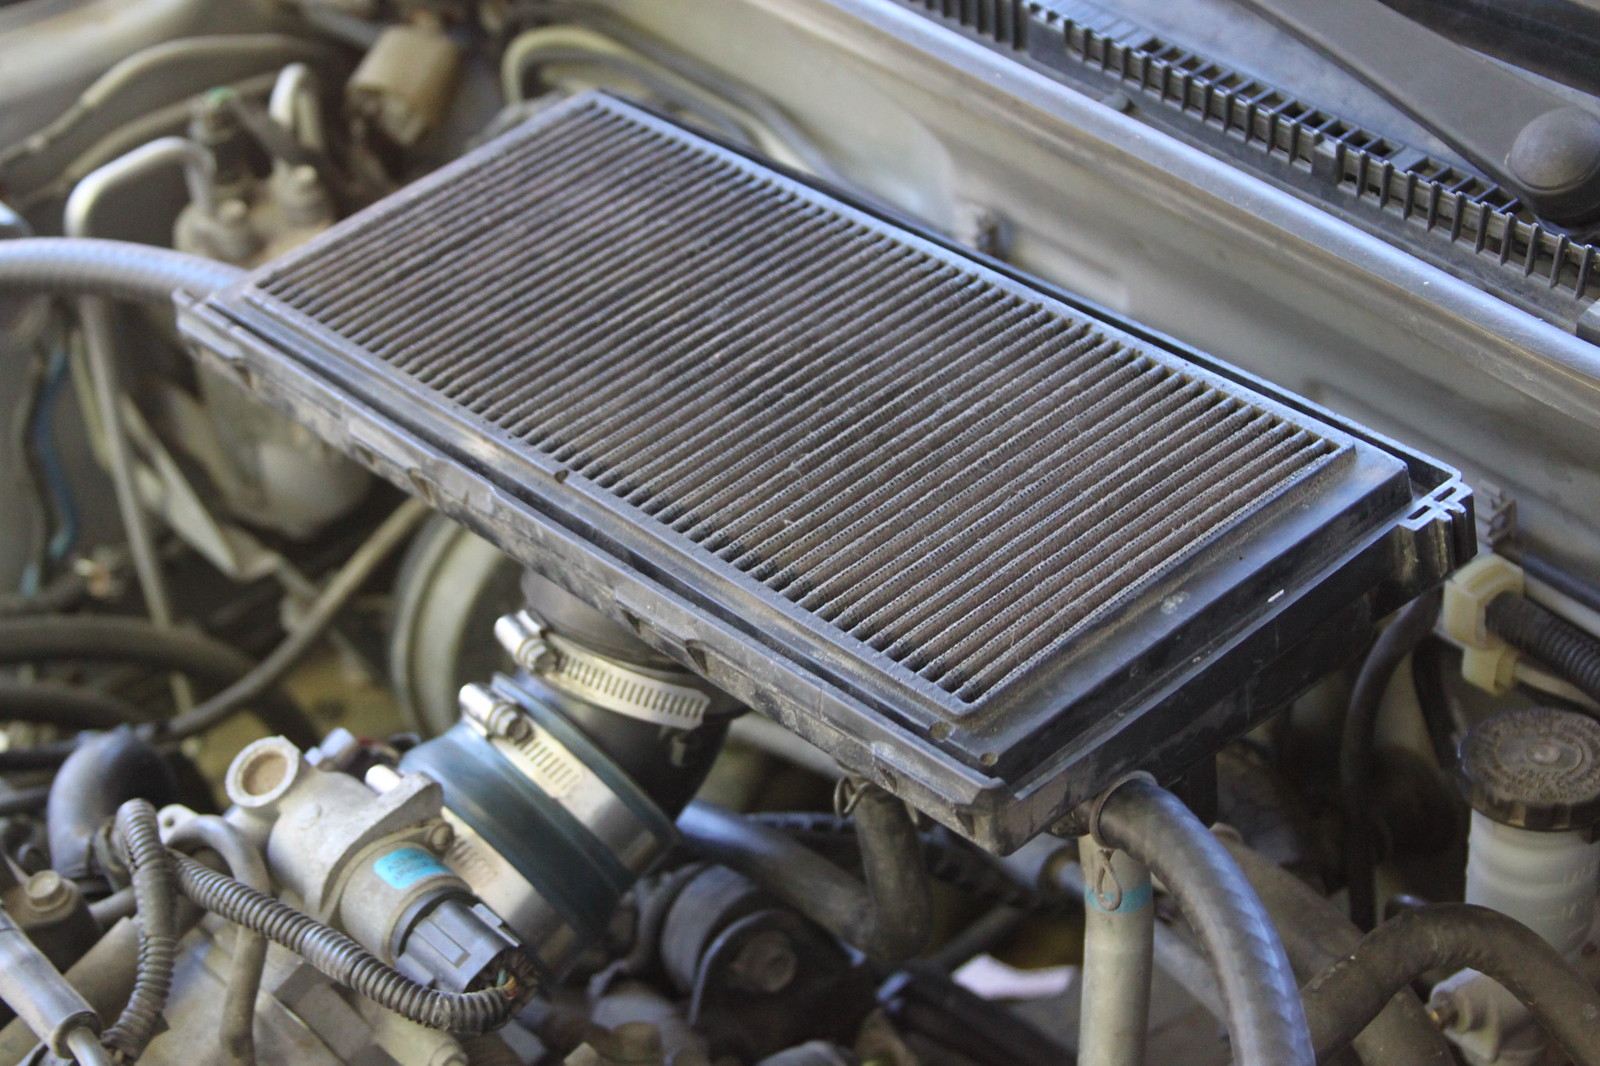 Air intake on the hood of a car - a luxury or a necessity 34